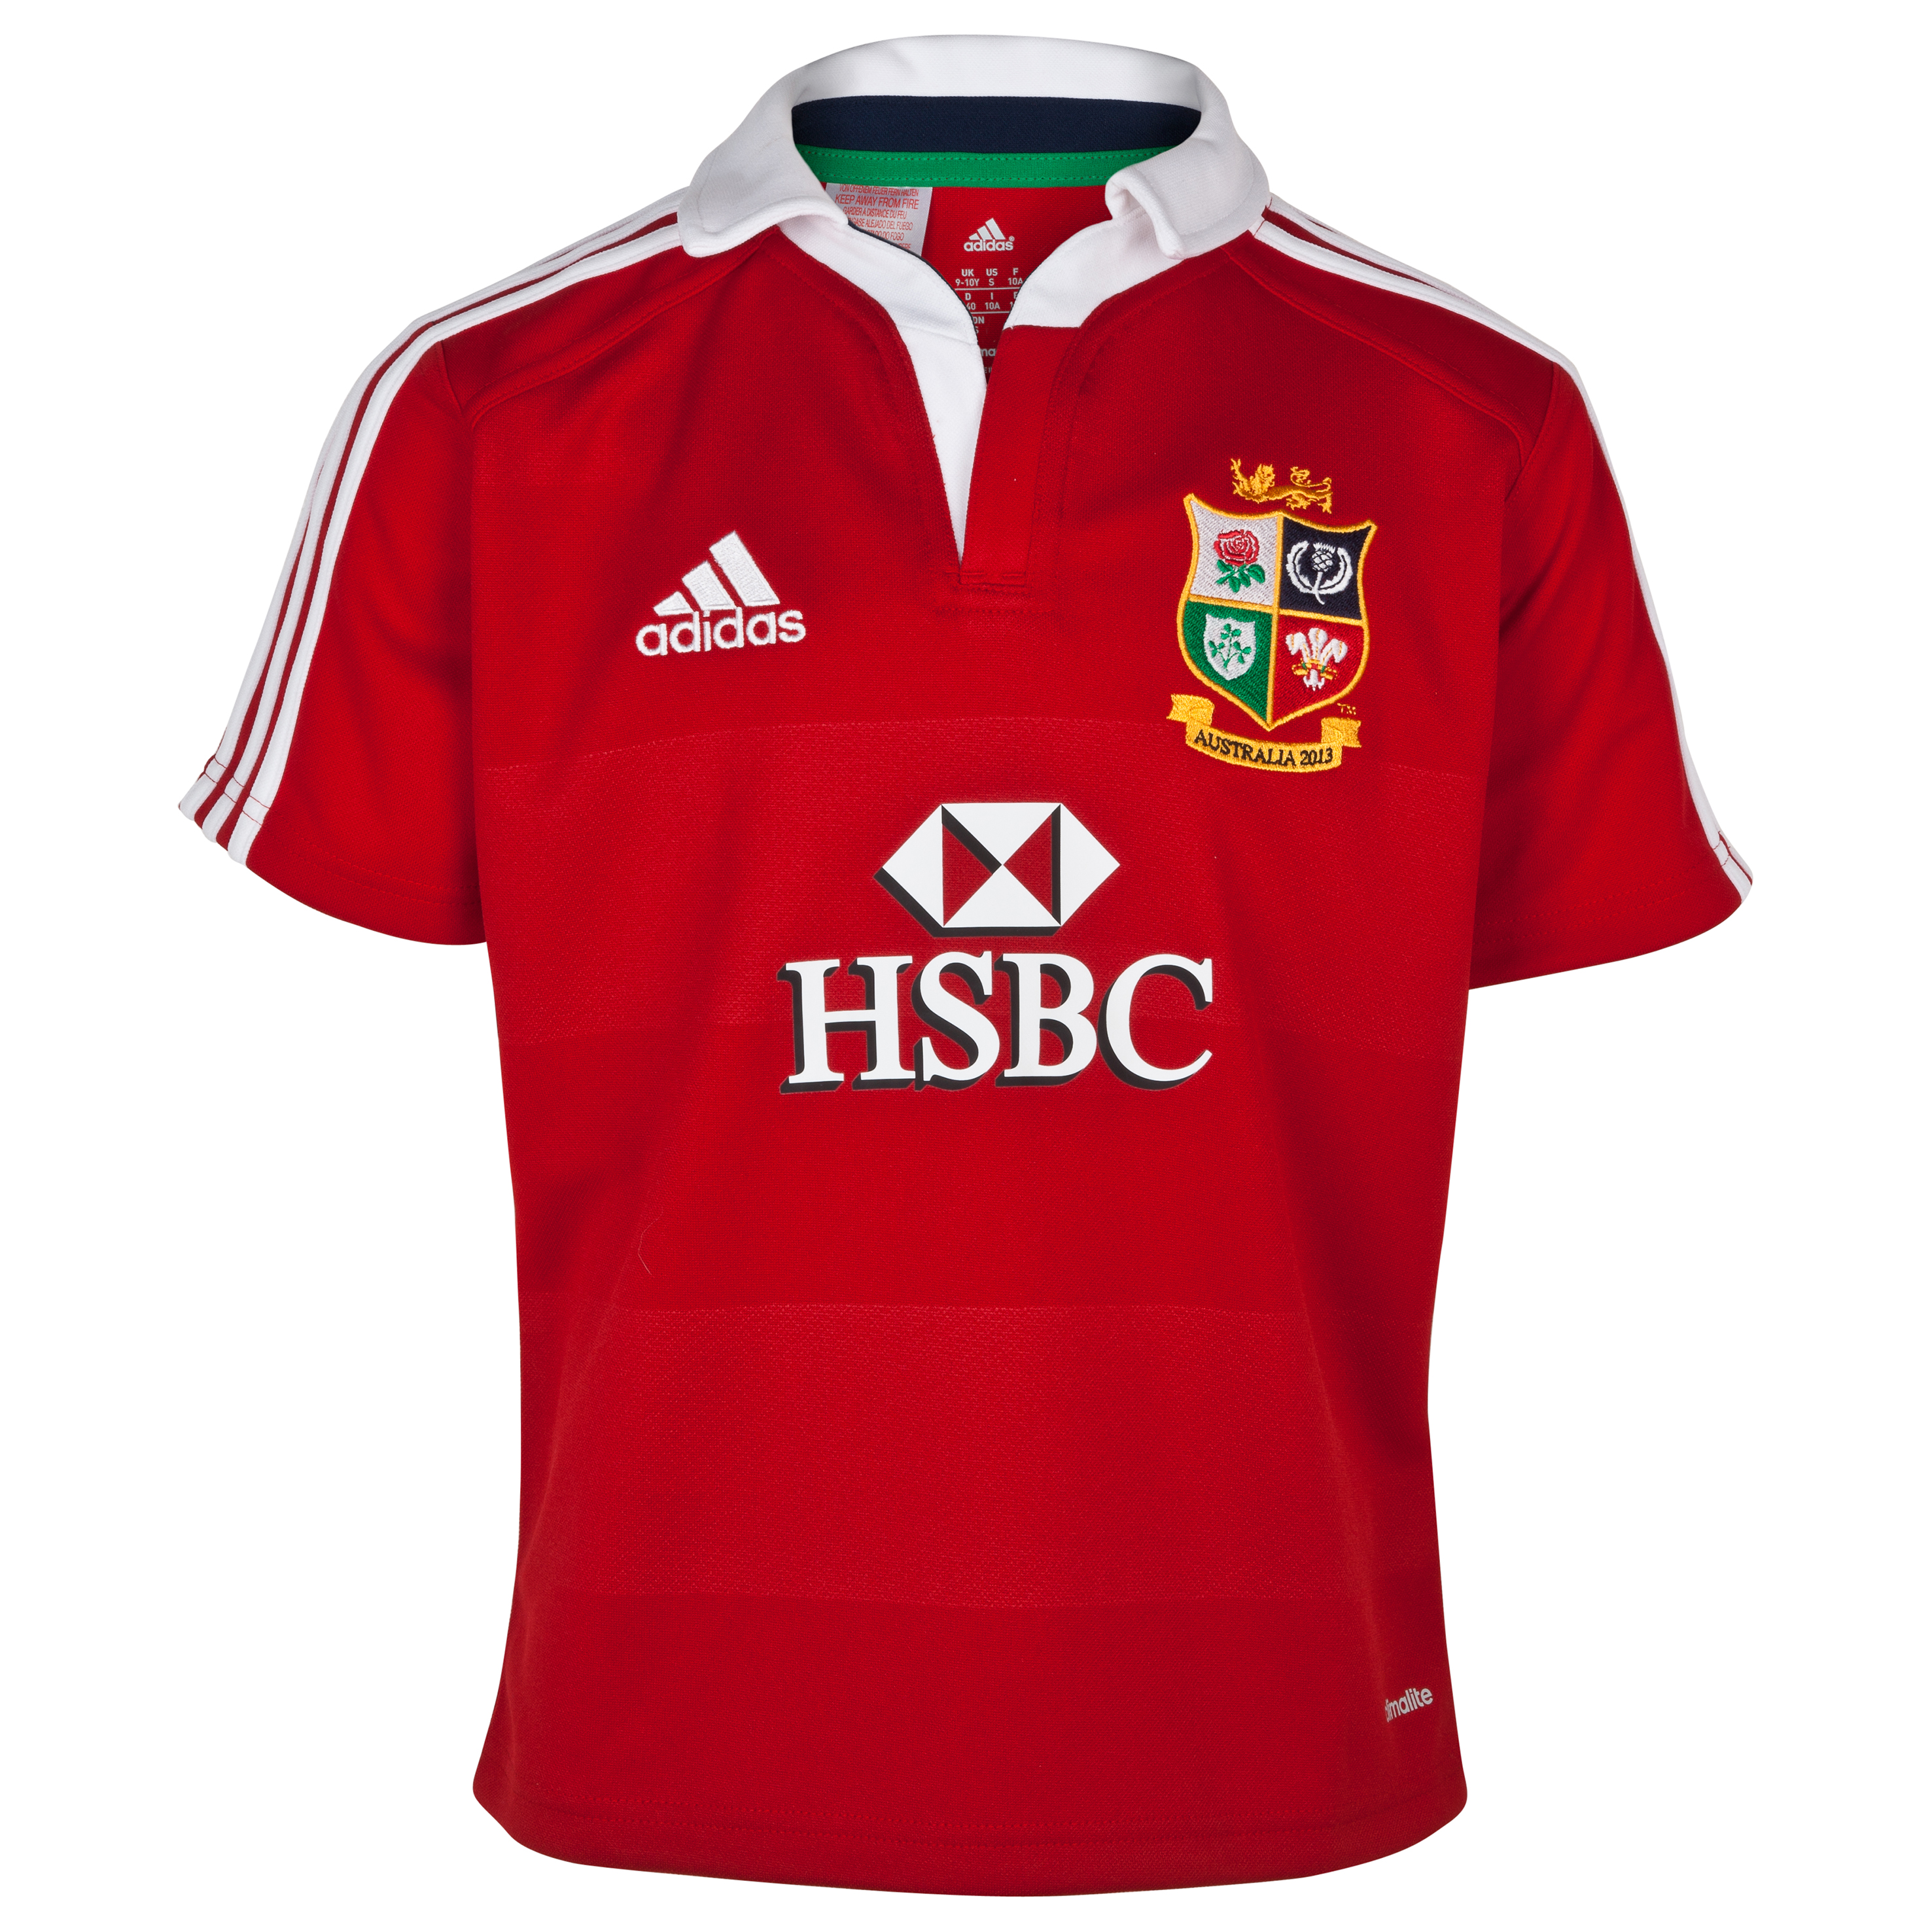 adidas British and Irish Lions Home Shirt 2013  - Youths